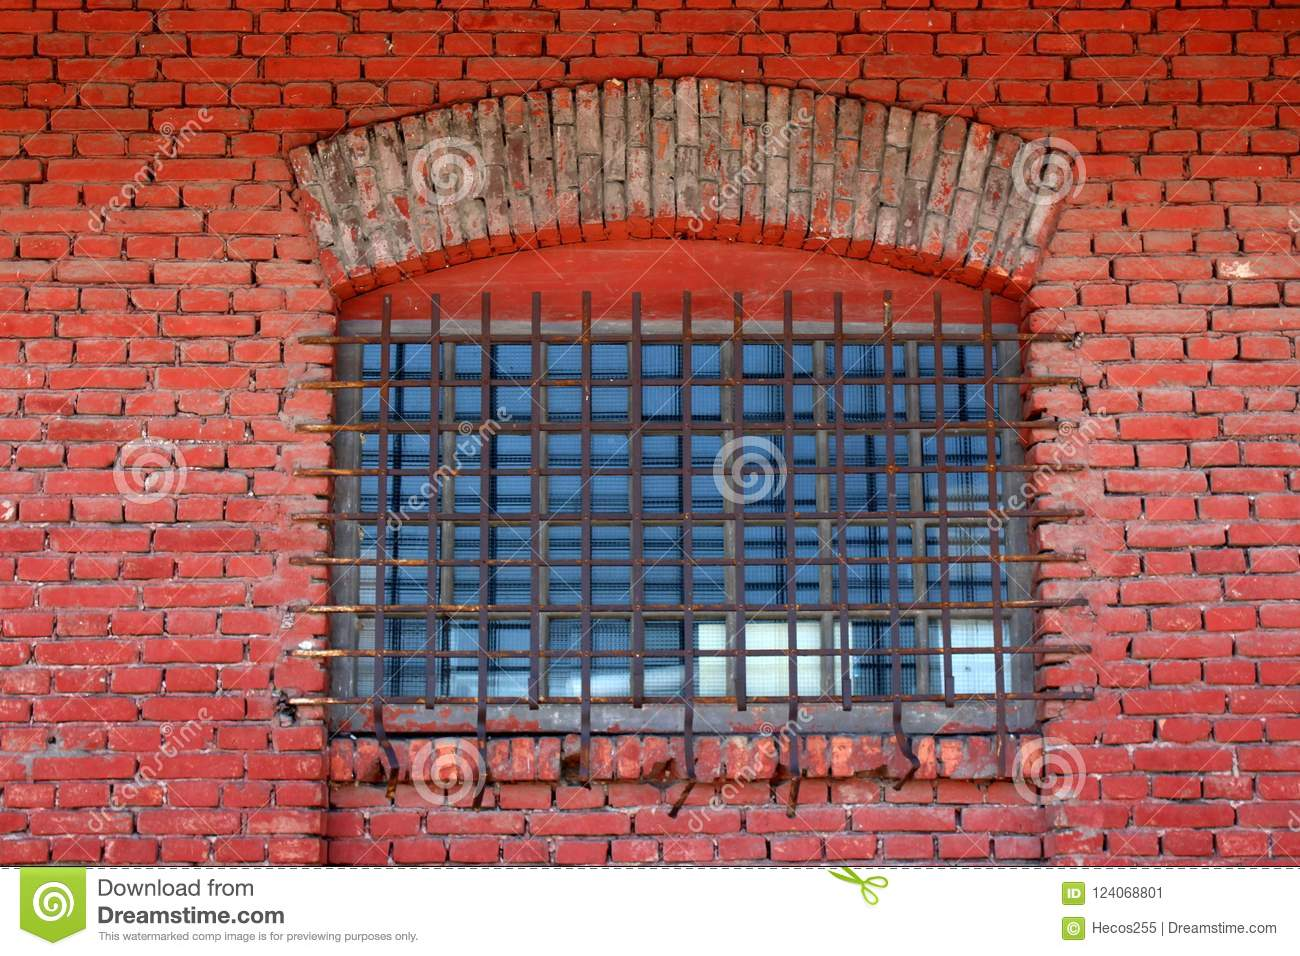 Window with safety wire protection and strong metal bars mounted on old red brick wall